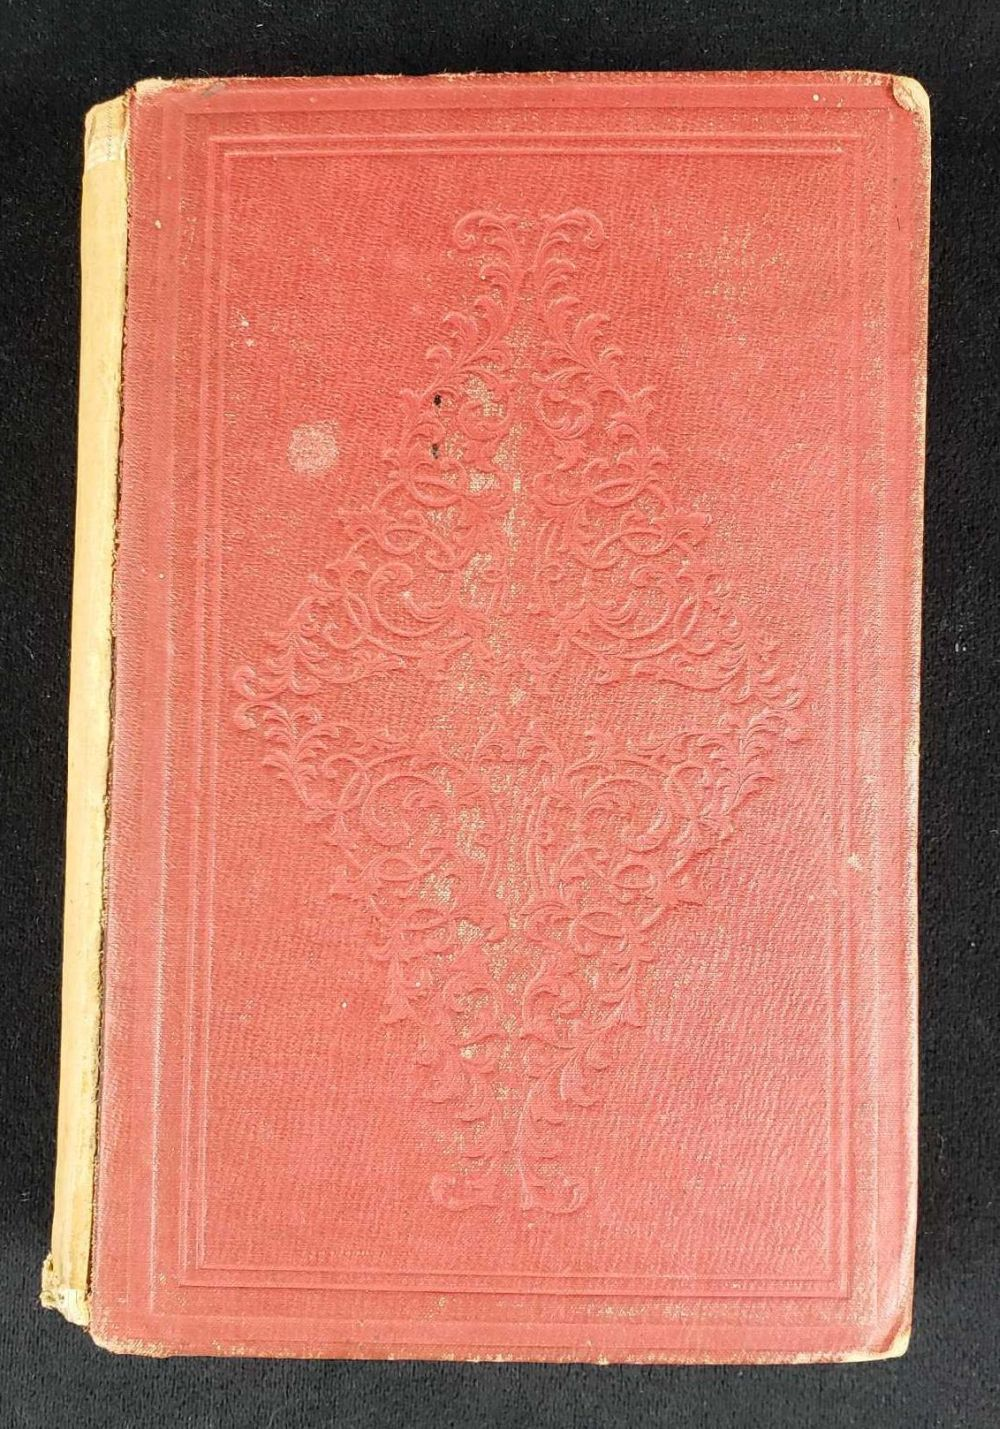 Lot 1049: 1852 What I Saw in England or Men and Things in The Great Metropolis by David W Bartlett Hardcover Book First Edition